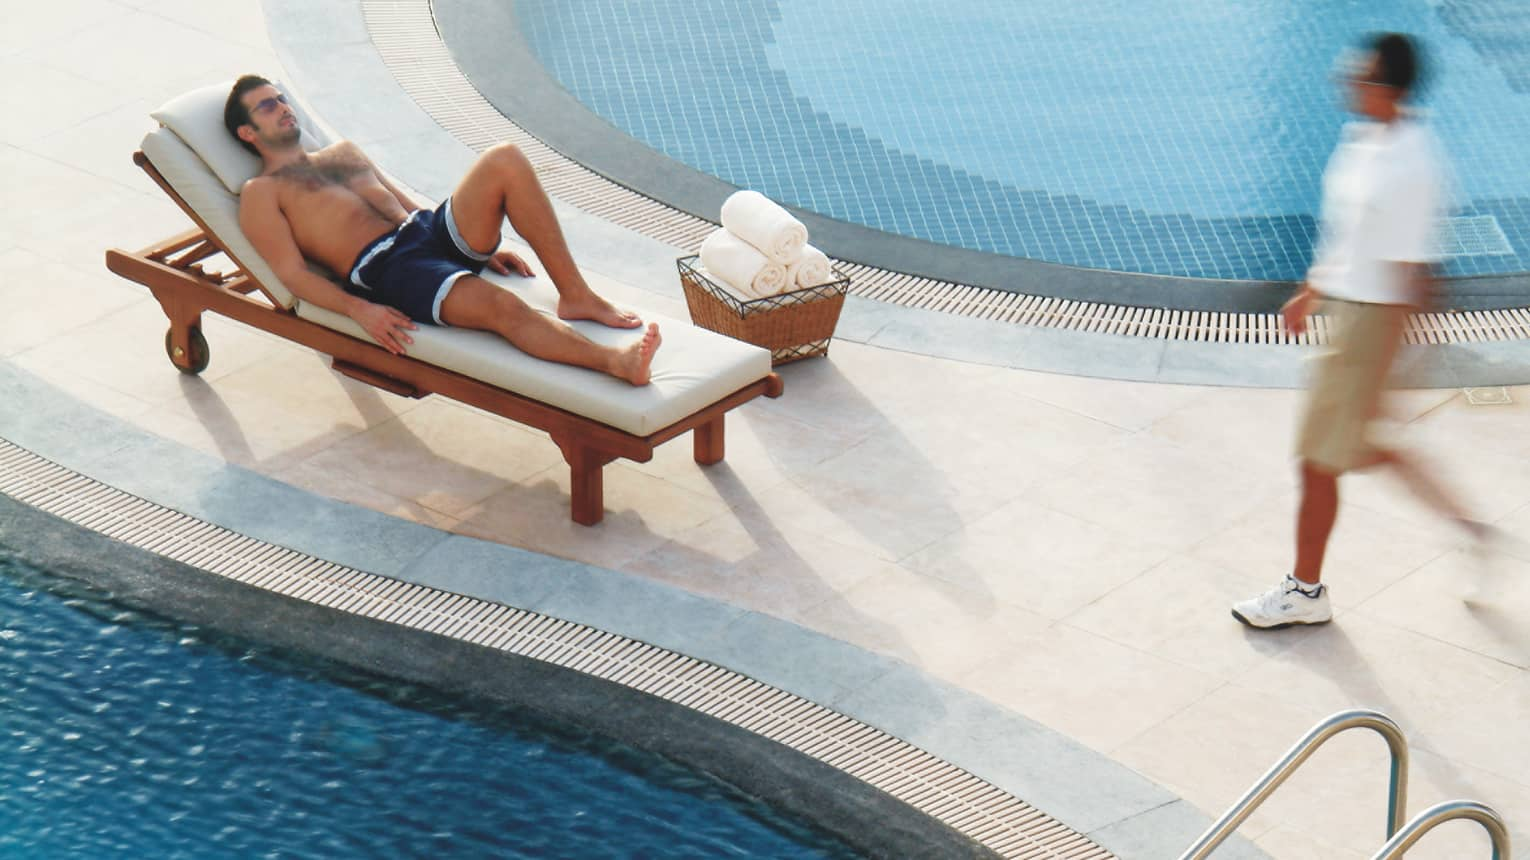 Man in swimsuit relaxes on beach lounge chair by swimming pool